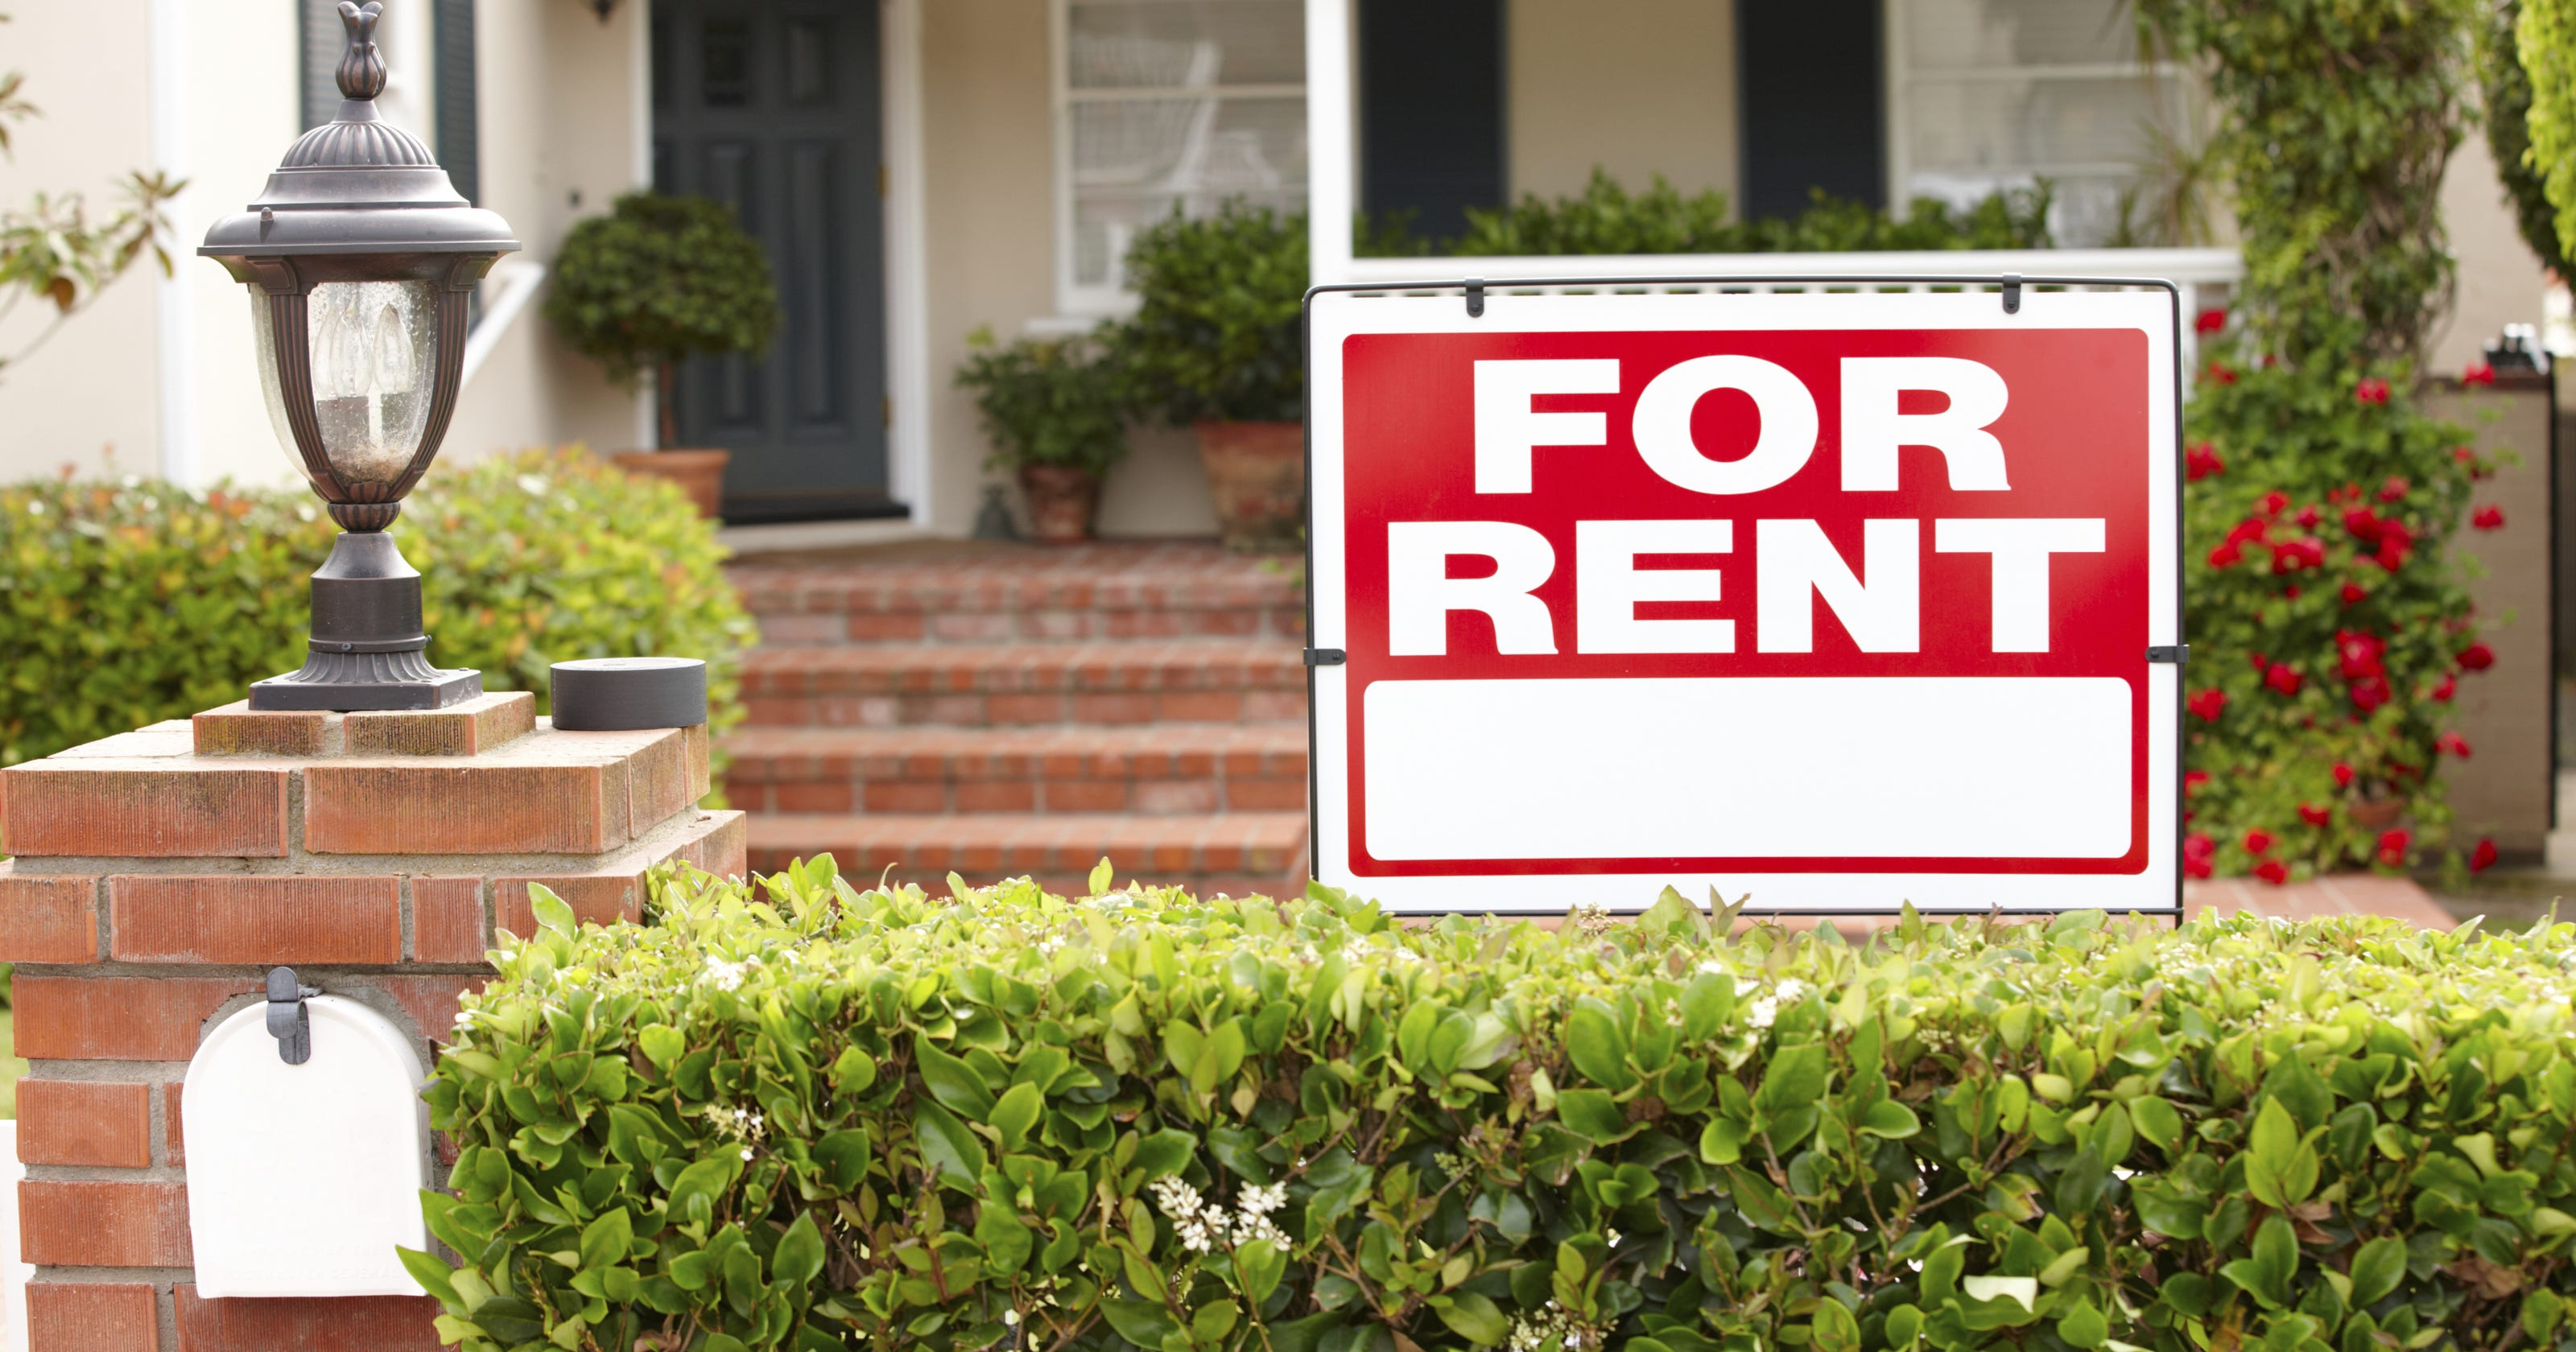 You might get fooled by a rental scam